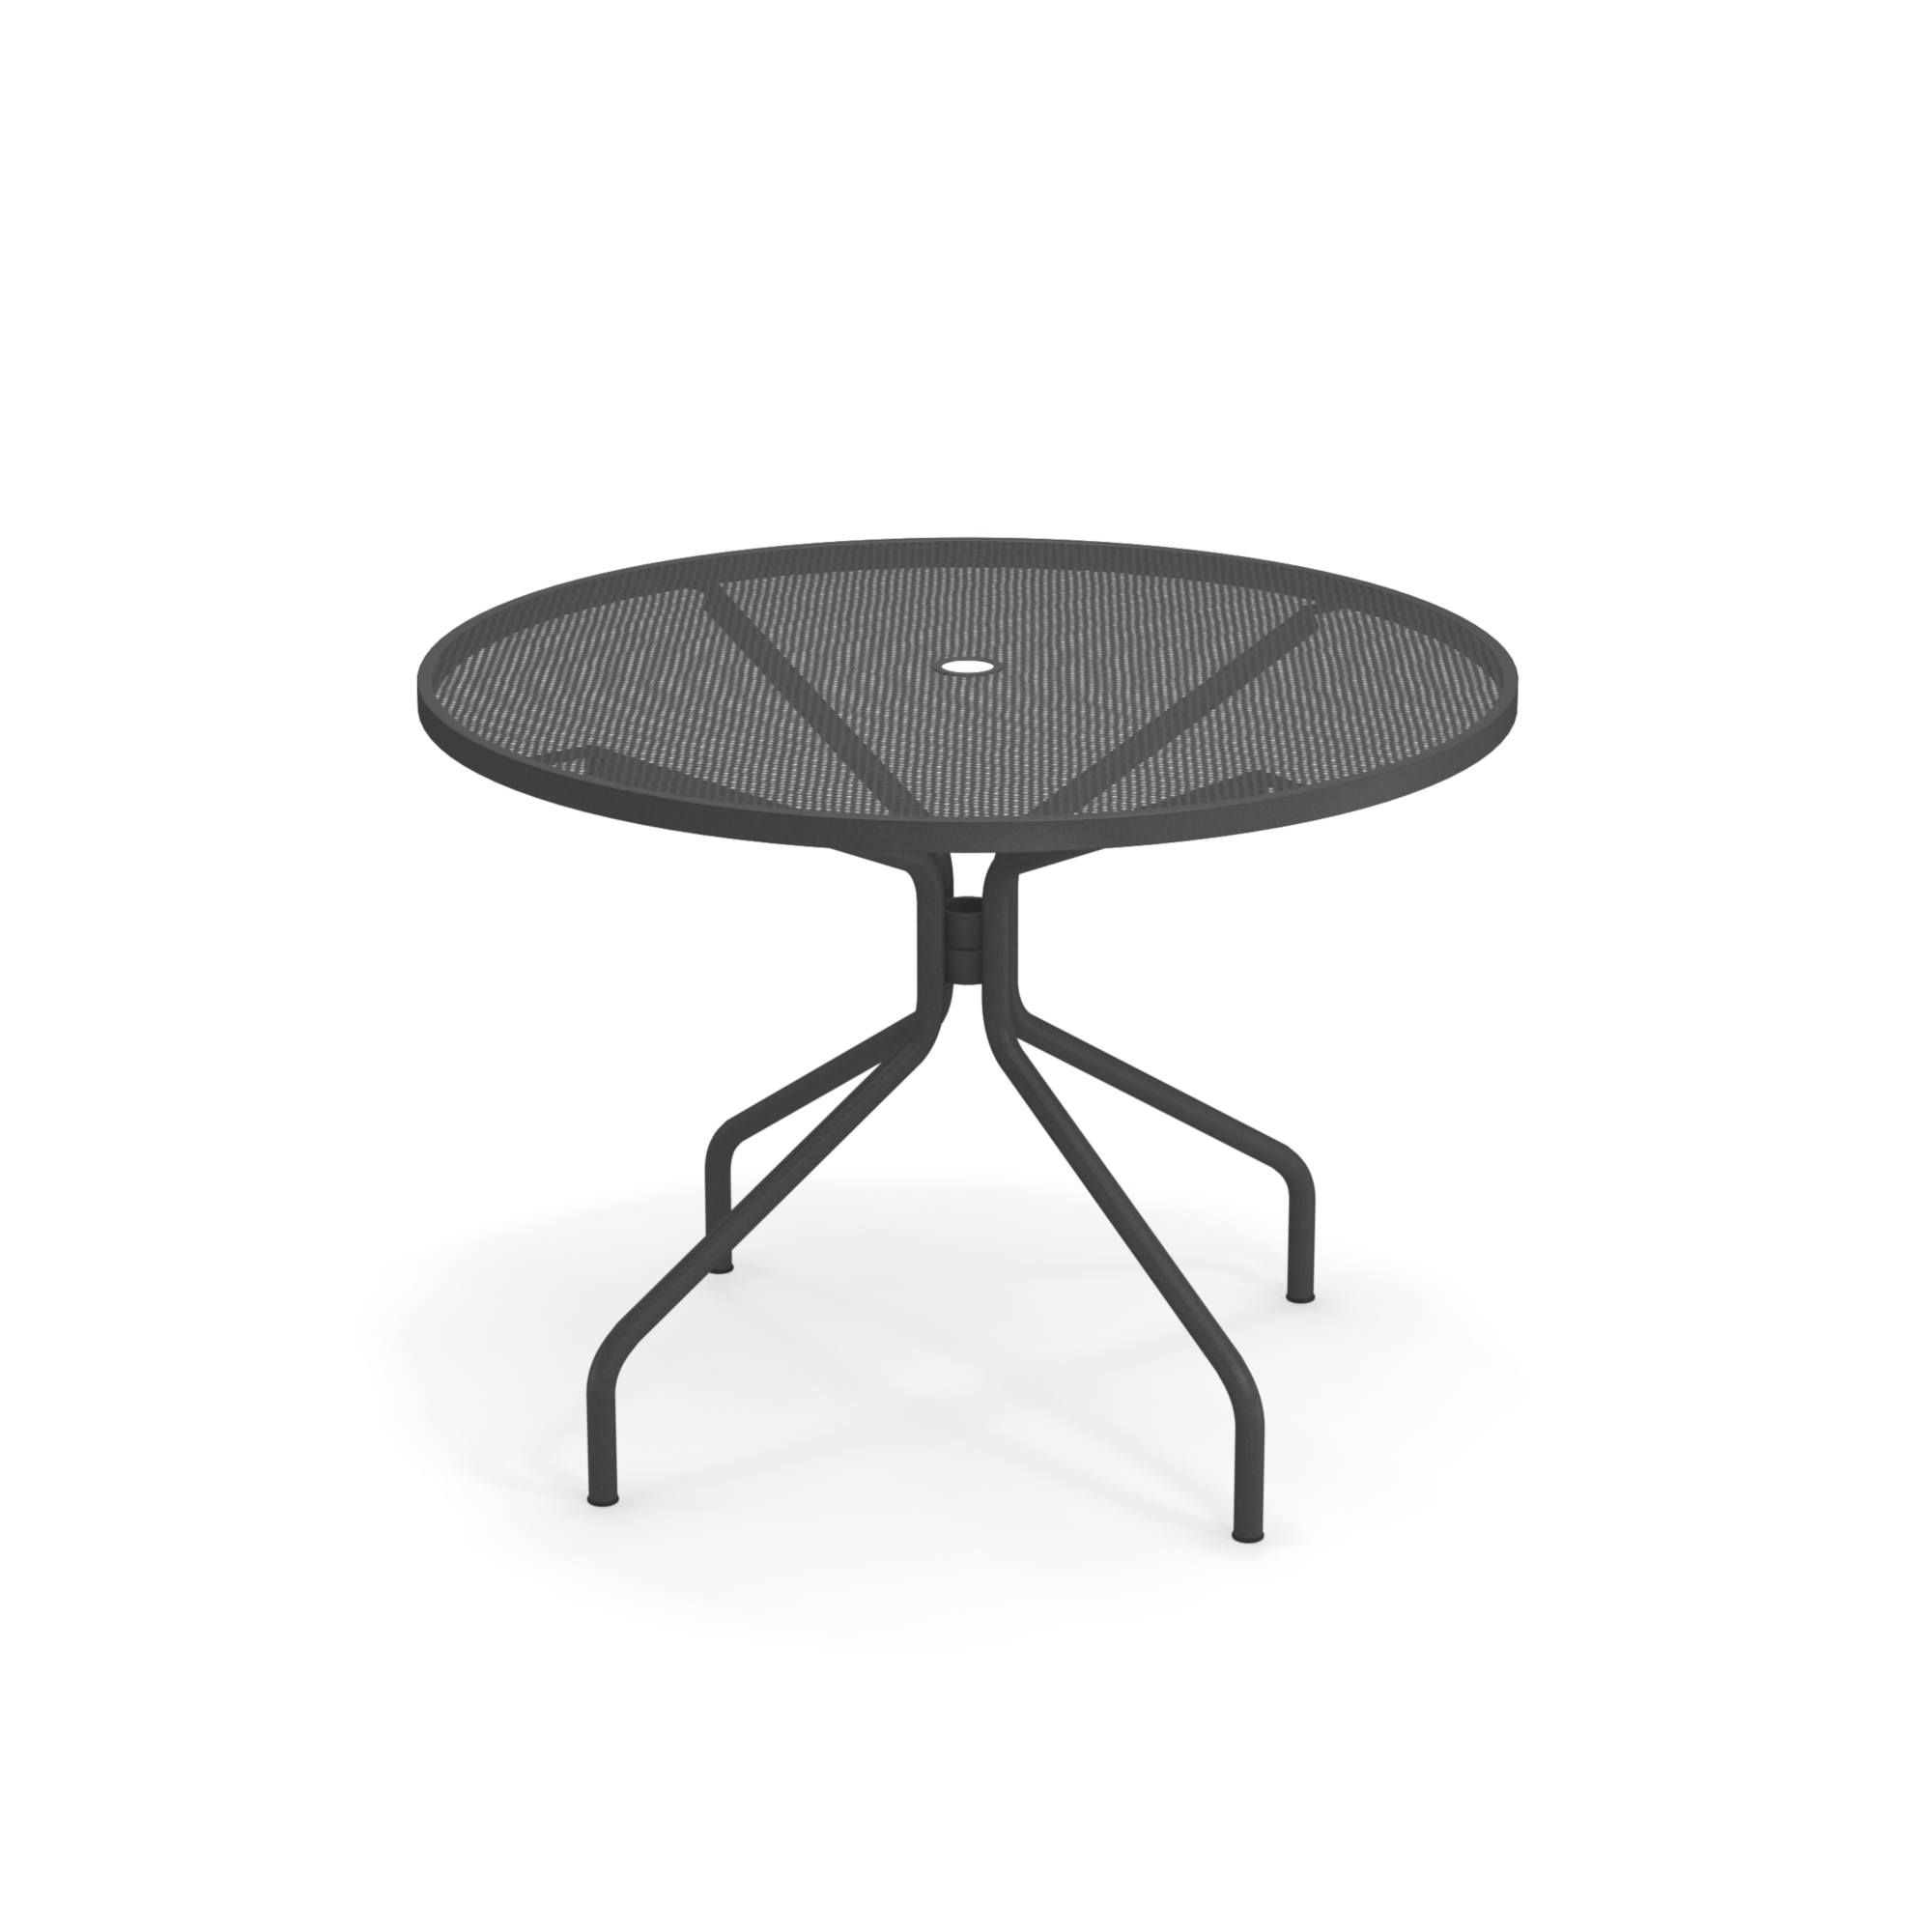 emuamericas, llc 804-22 table, outdoor